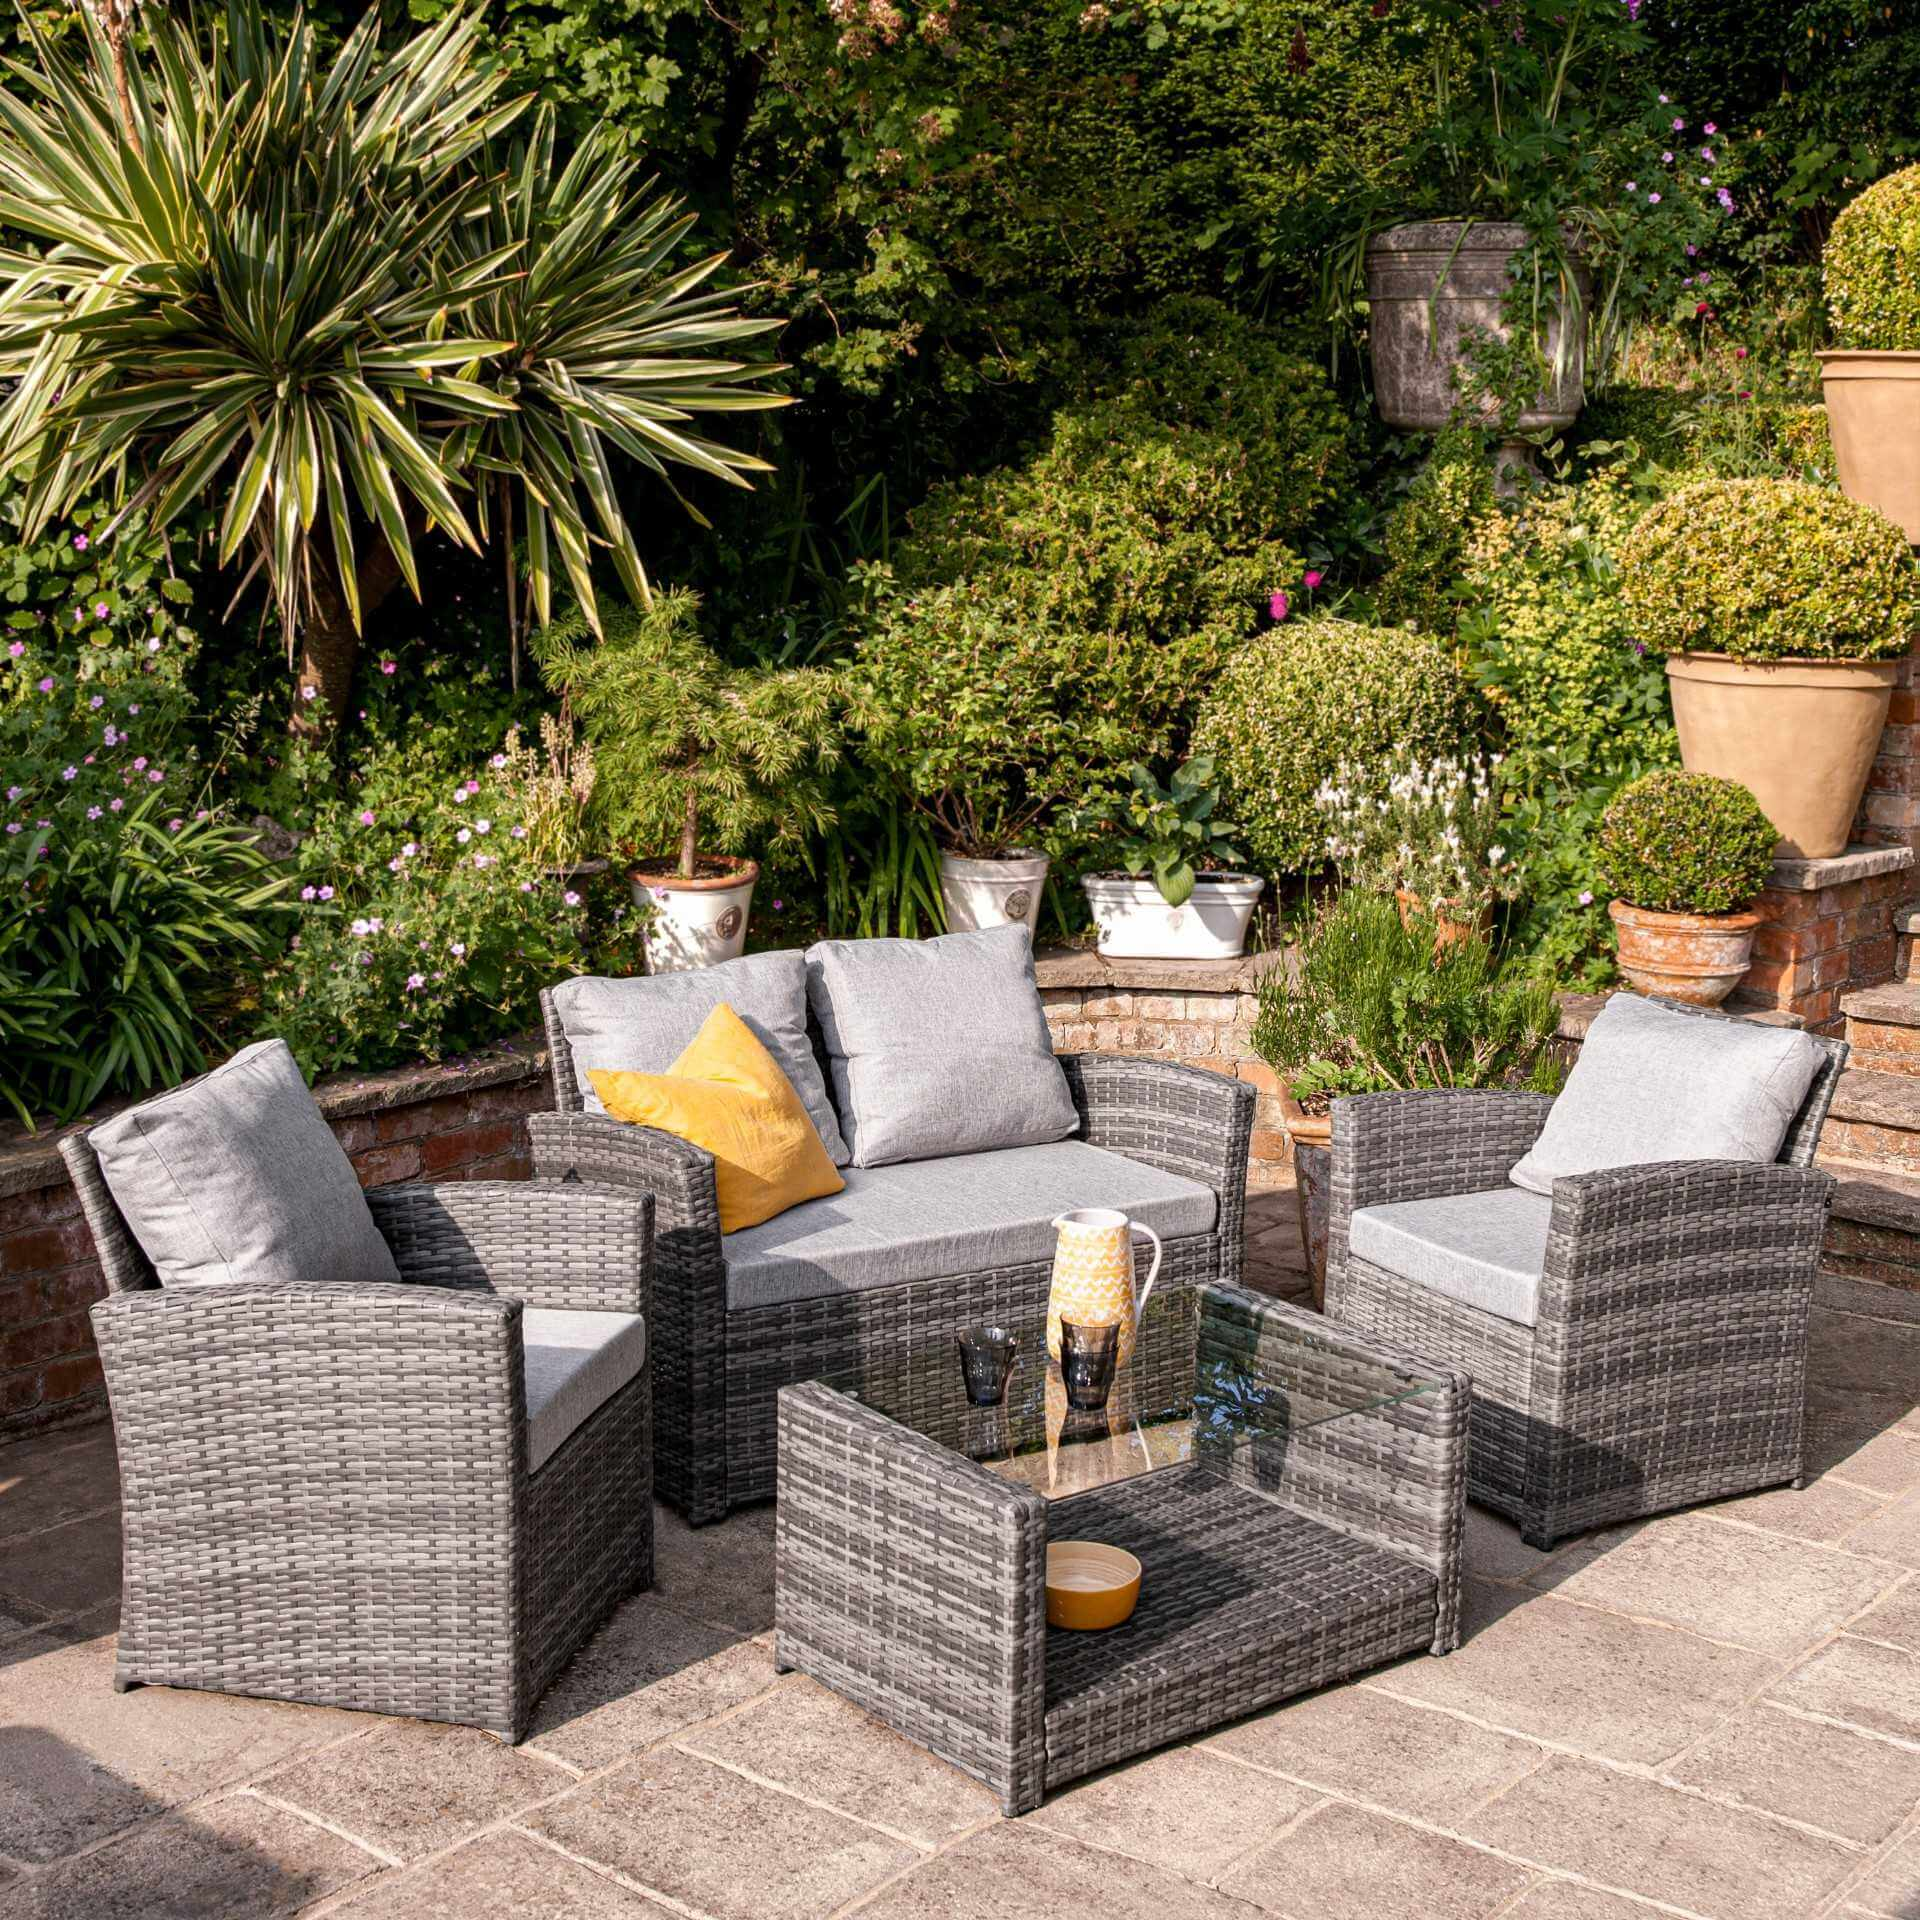 Rattan Garden Sofa Set - 4 Seater - Grey Weave - Laura James